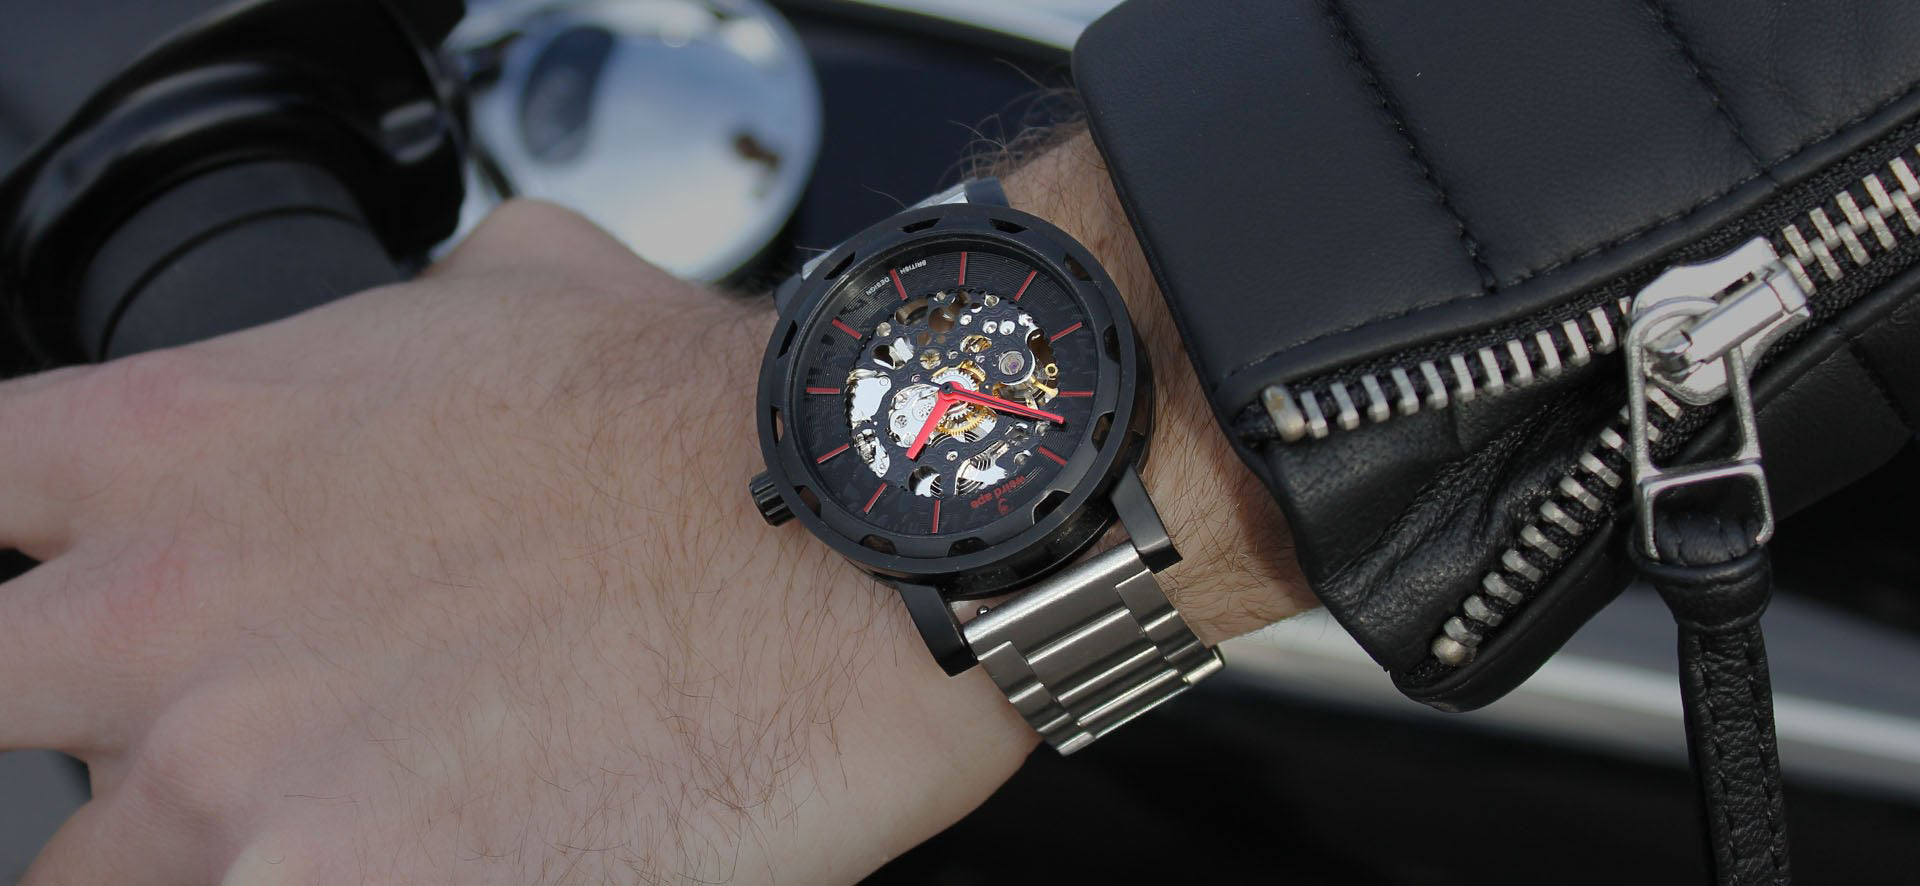 Black skeleton watch with a silver strap in a lifestyle image